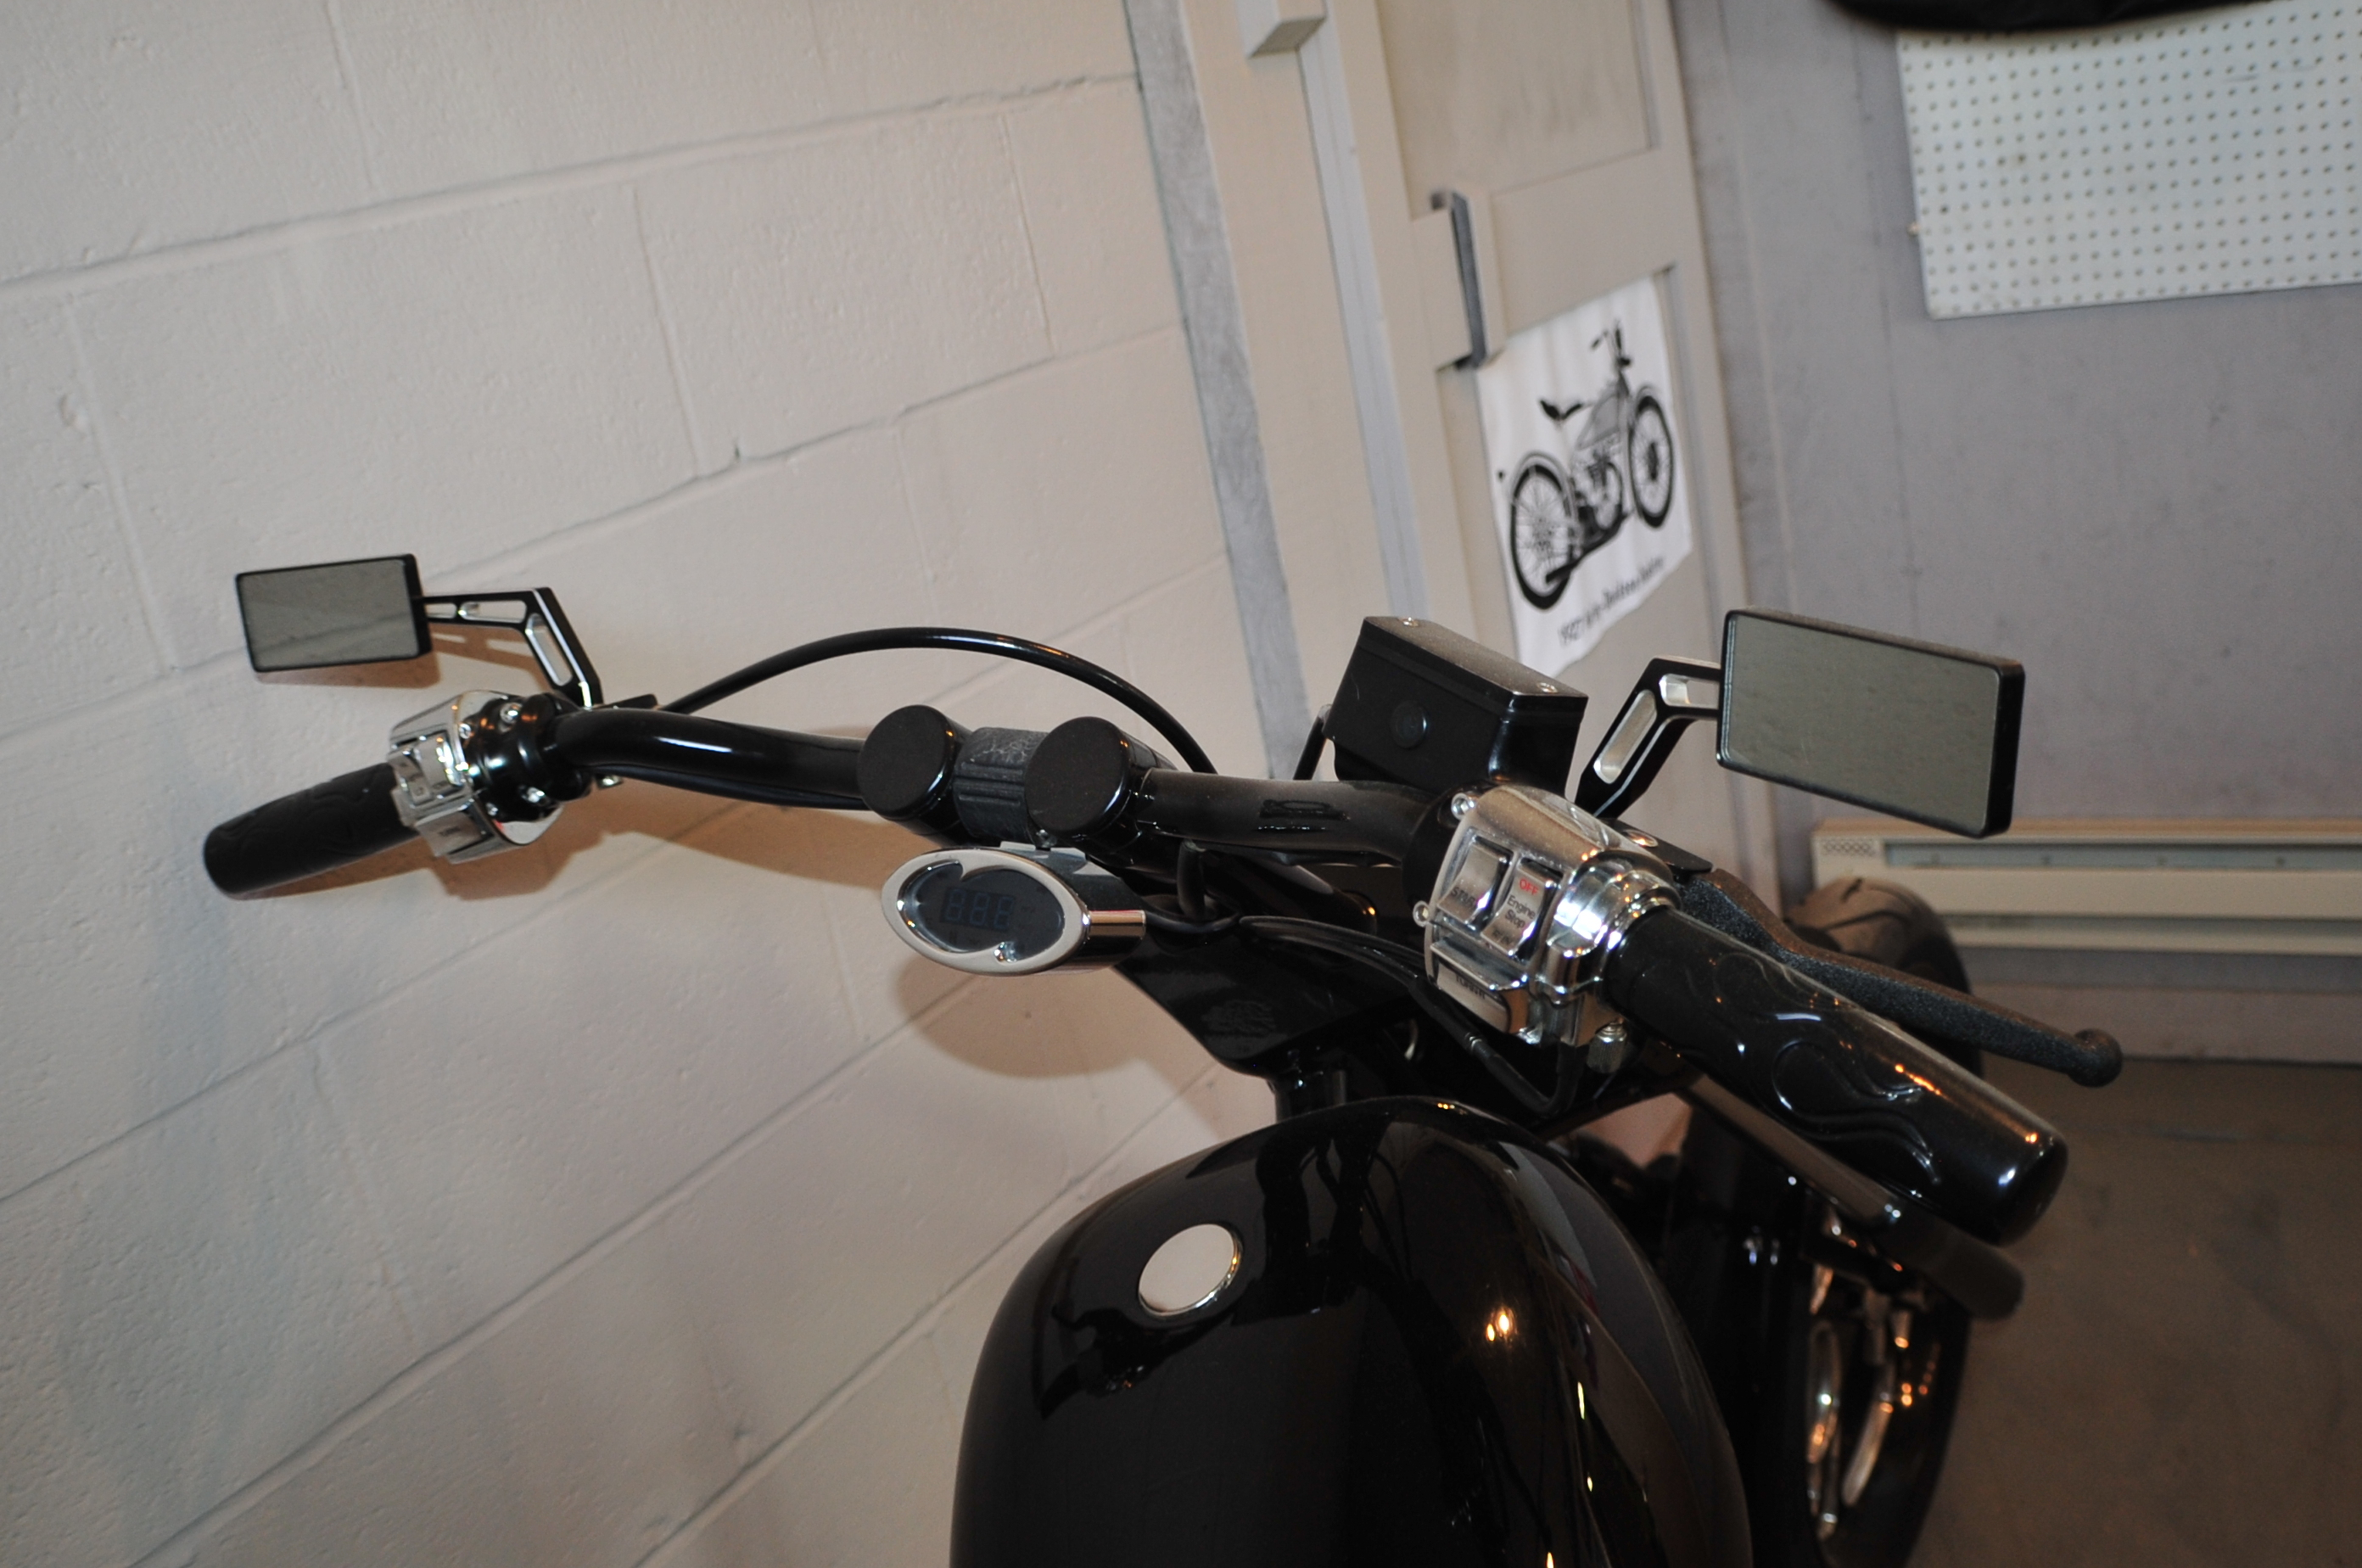 2015 New Age Choppers Glossy Black Custom Motorcycle Sale McHenry